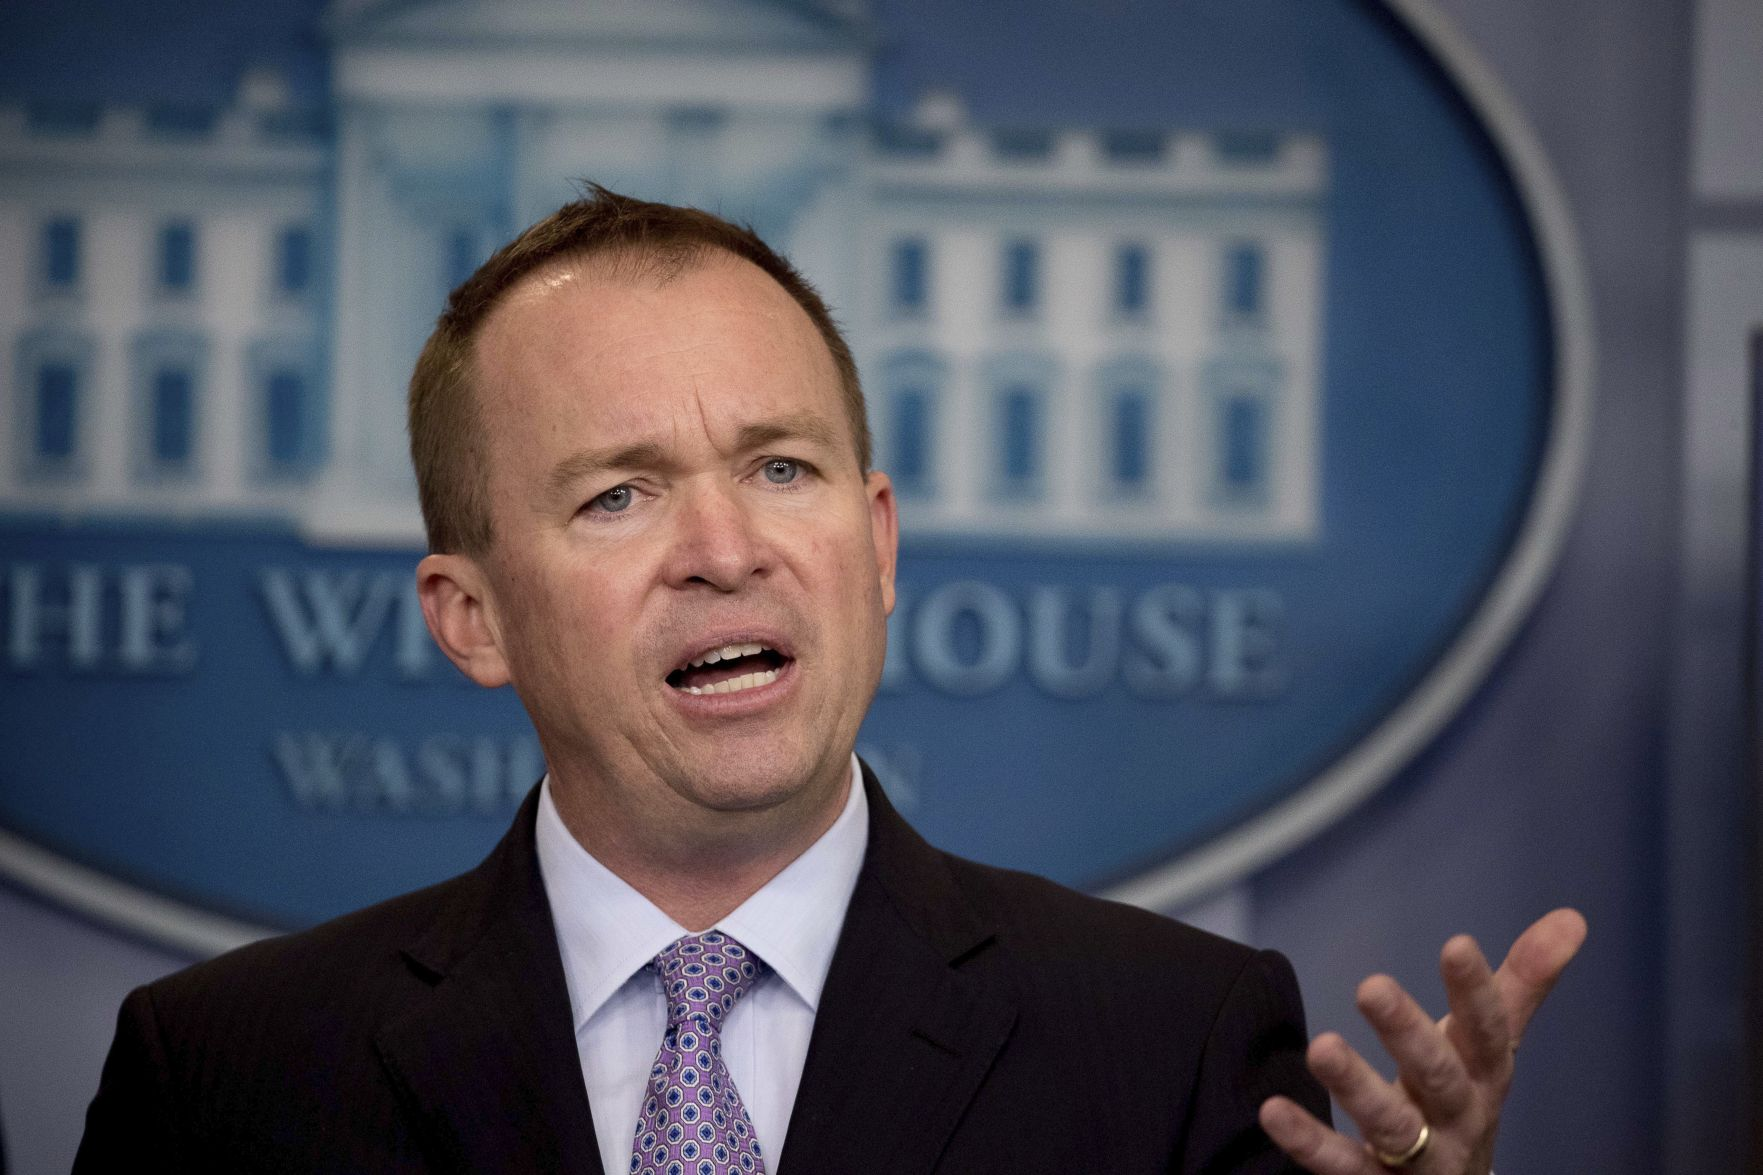 Mulvaney: It's White House policy Senate keeps focus on healthcare